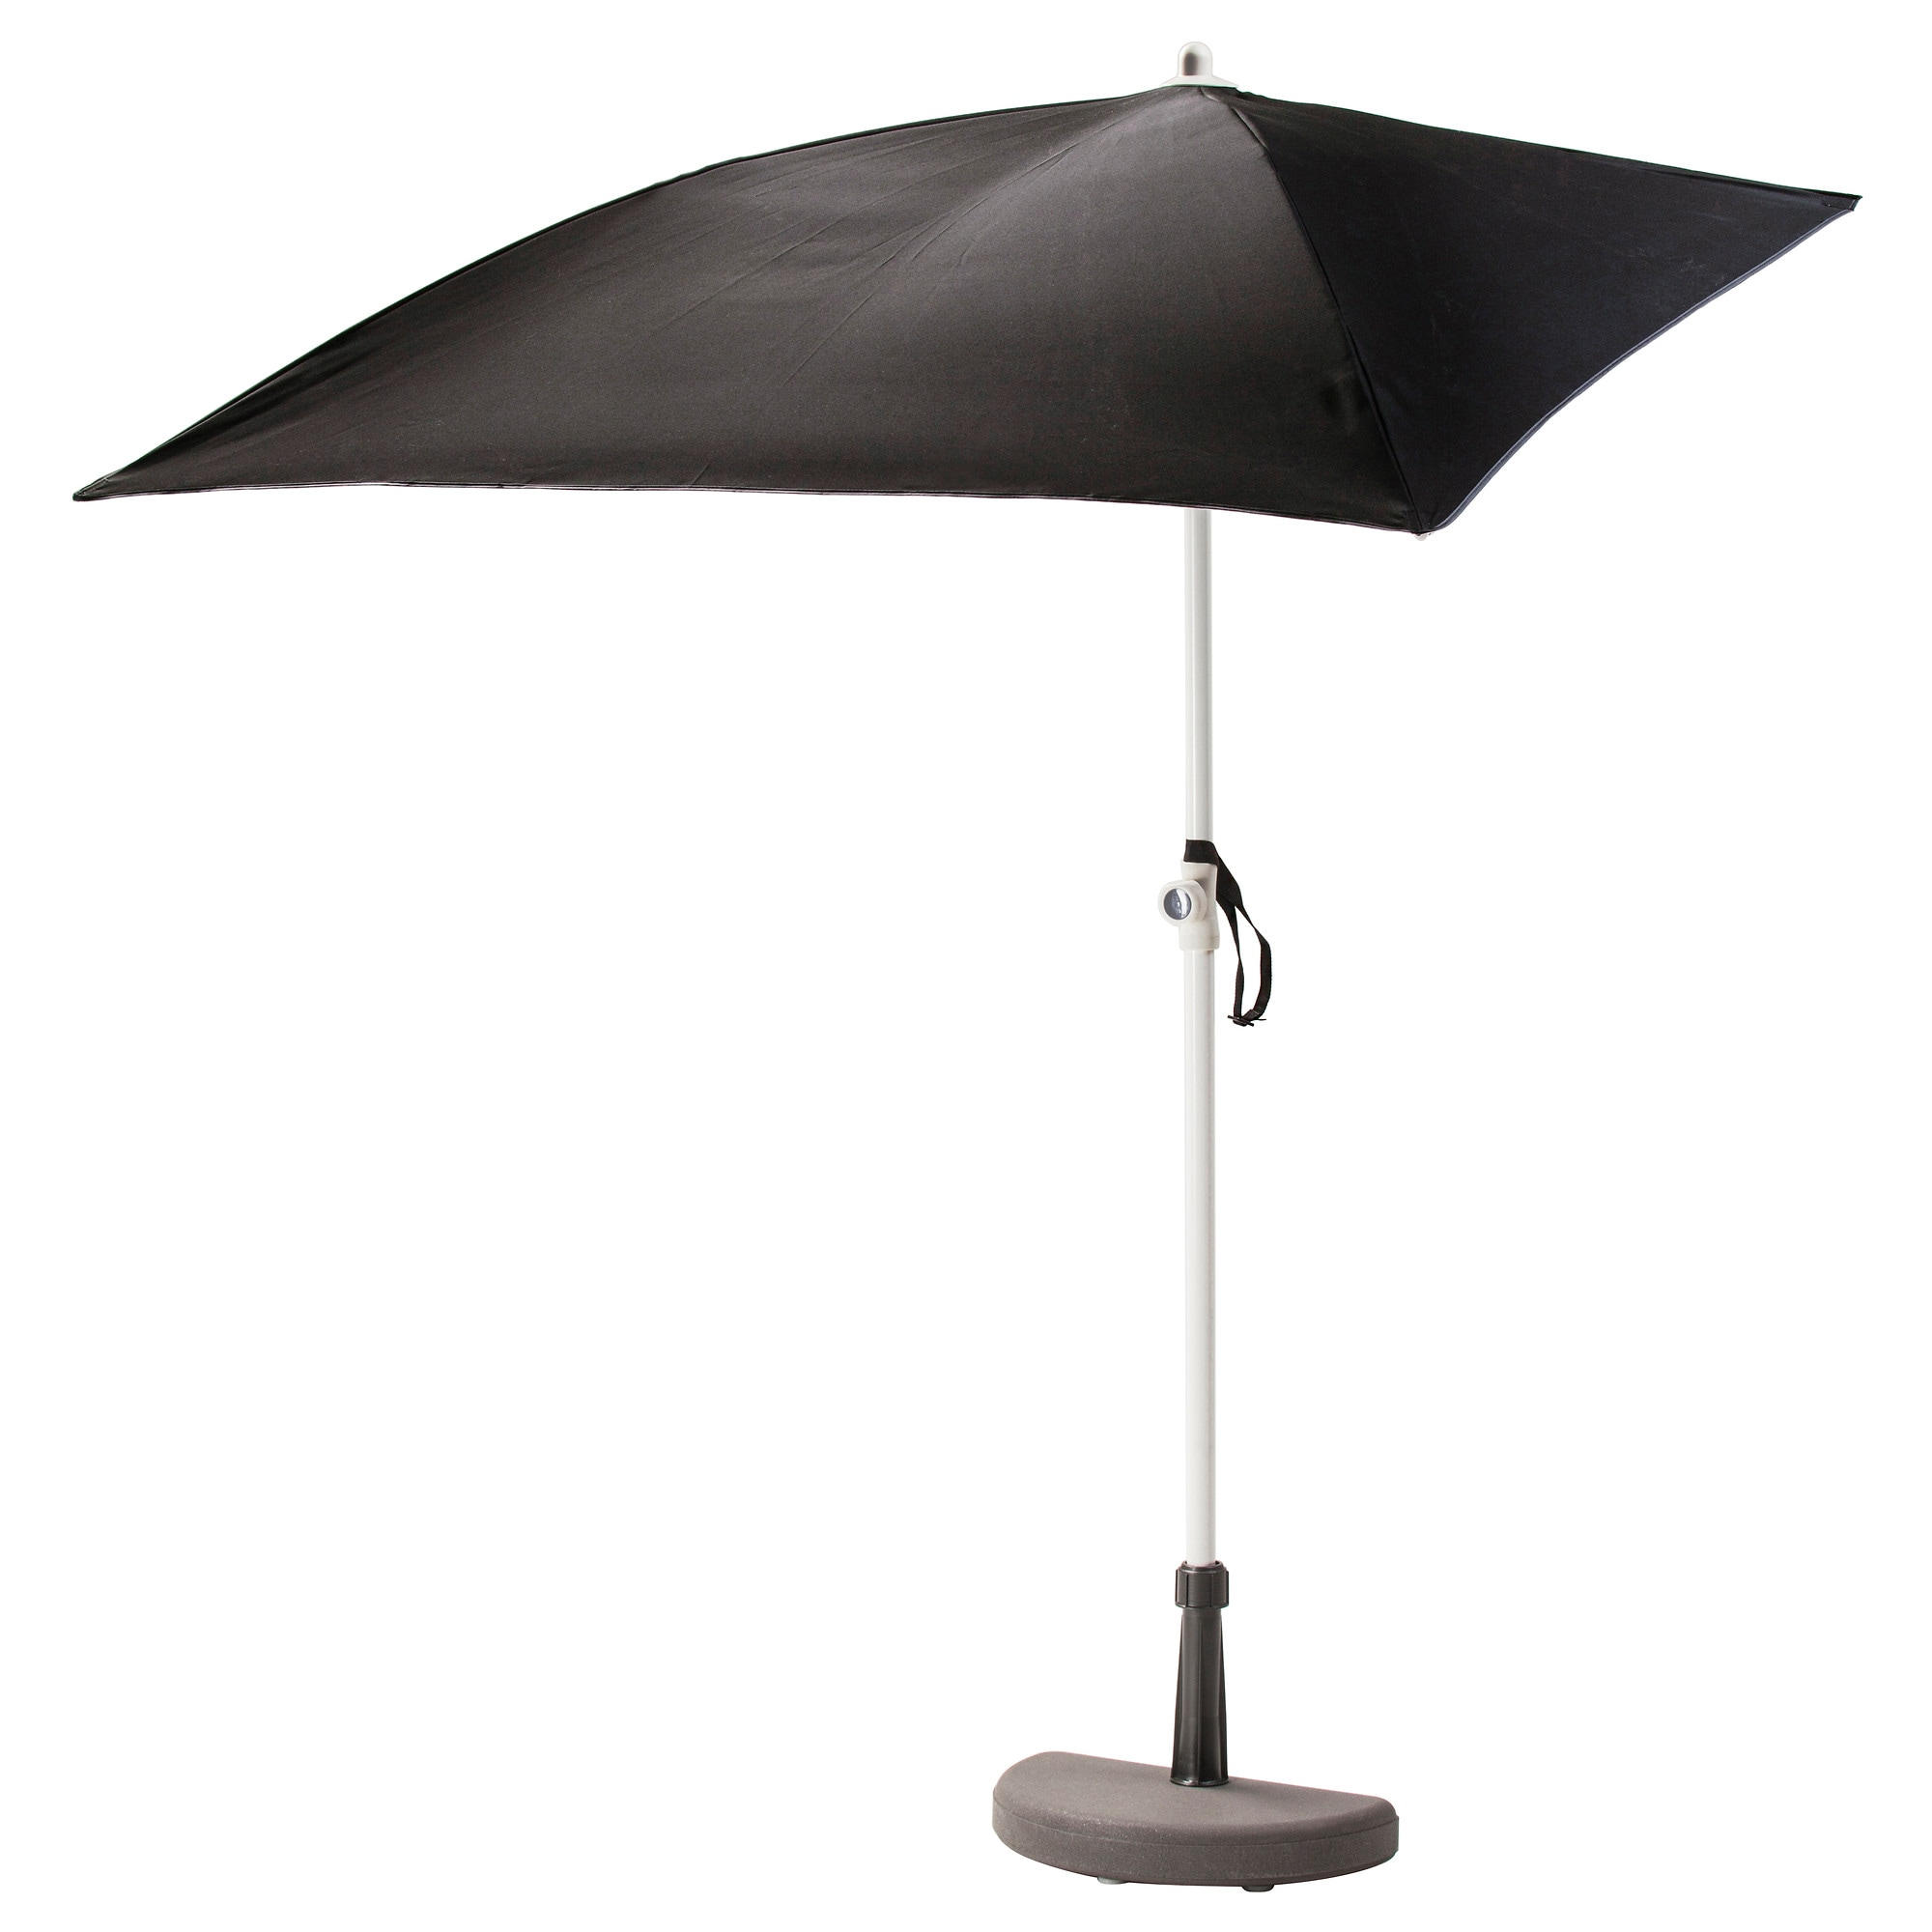 IKEA BRAMSÖN / FLISÖ Patio Umbrella With Base